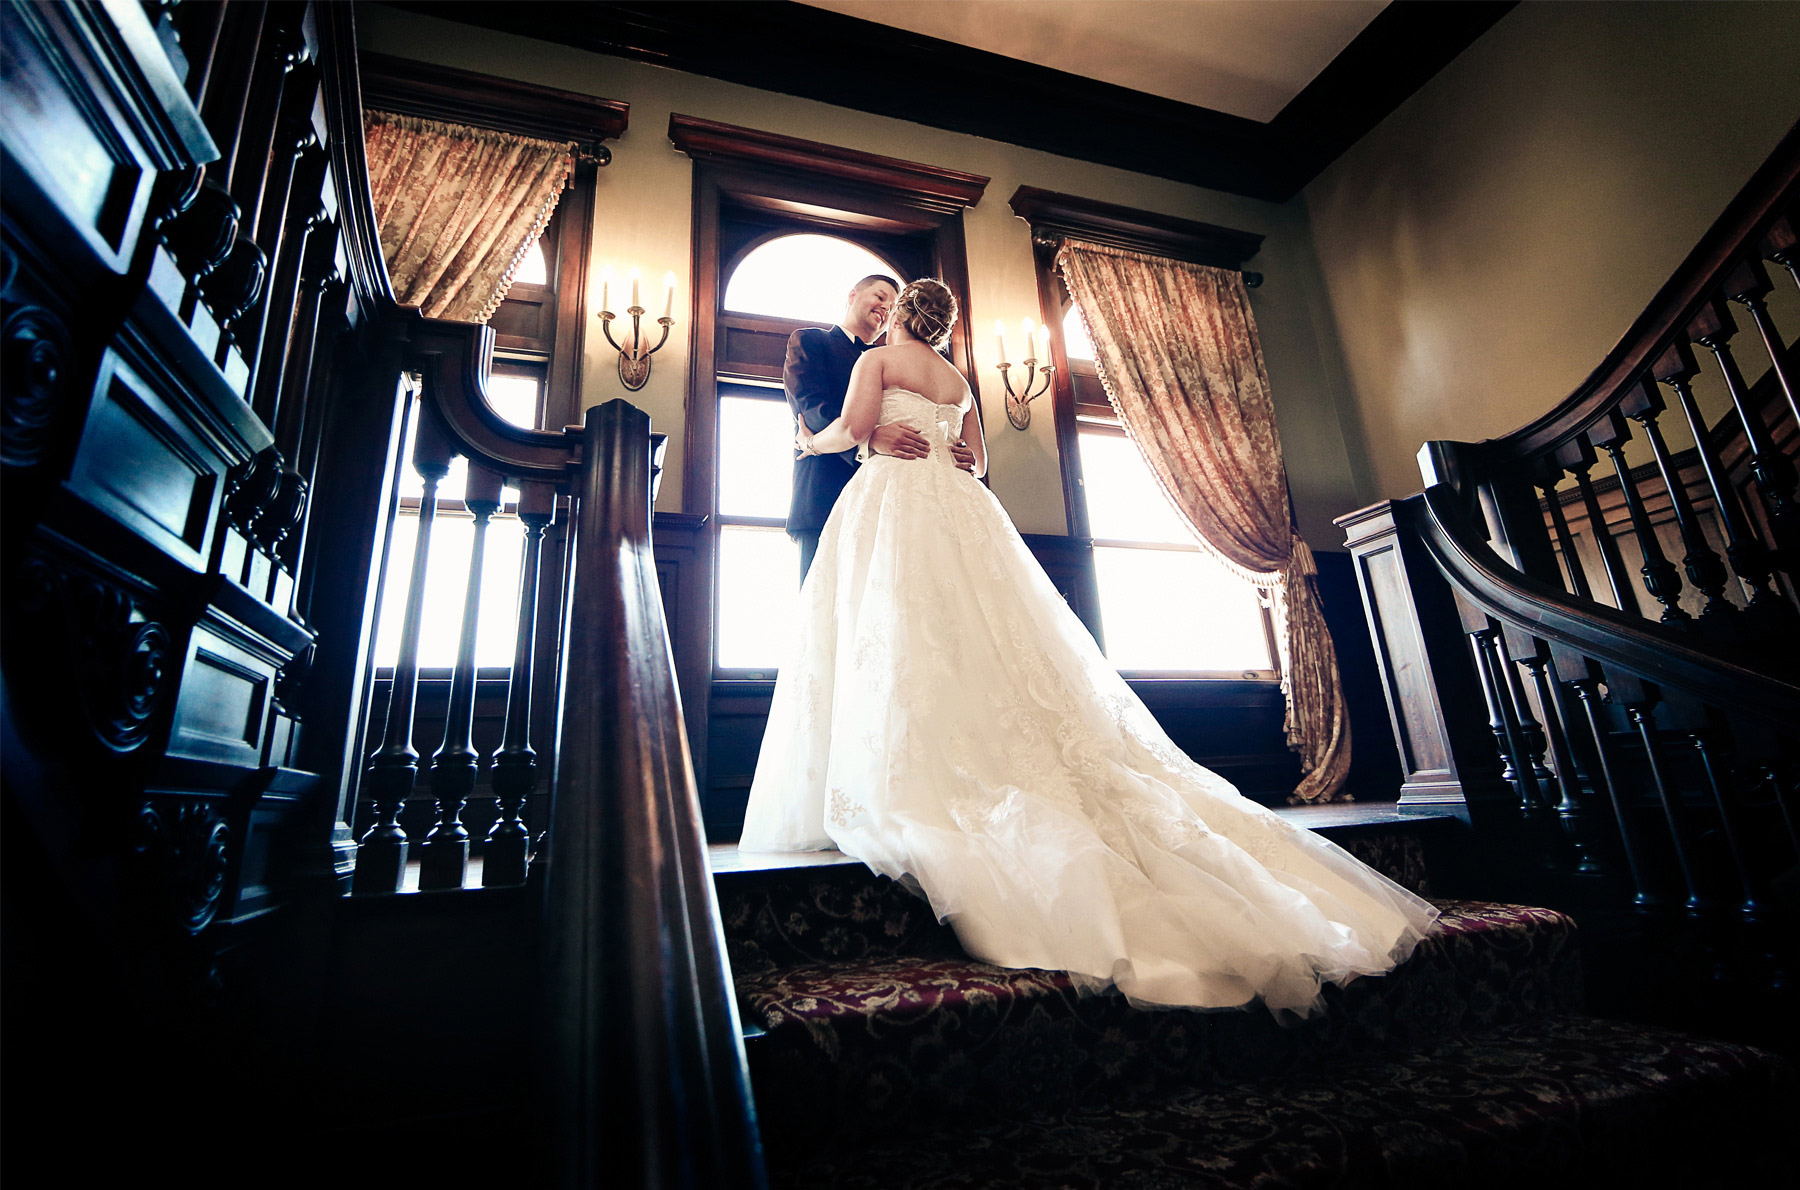 05-Minneapolis-Minnesota-Wedding-Photography-by-Vick-Photography-Semple-Mansion-First-Look-Caitlin-&-Derrick.jpg